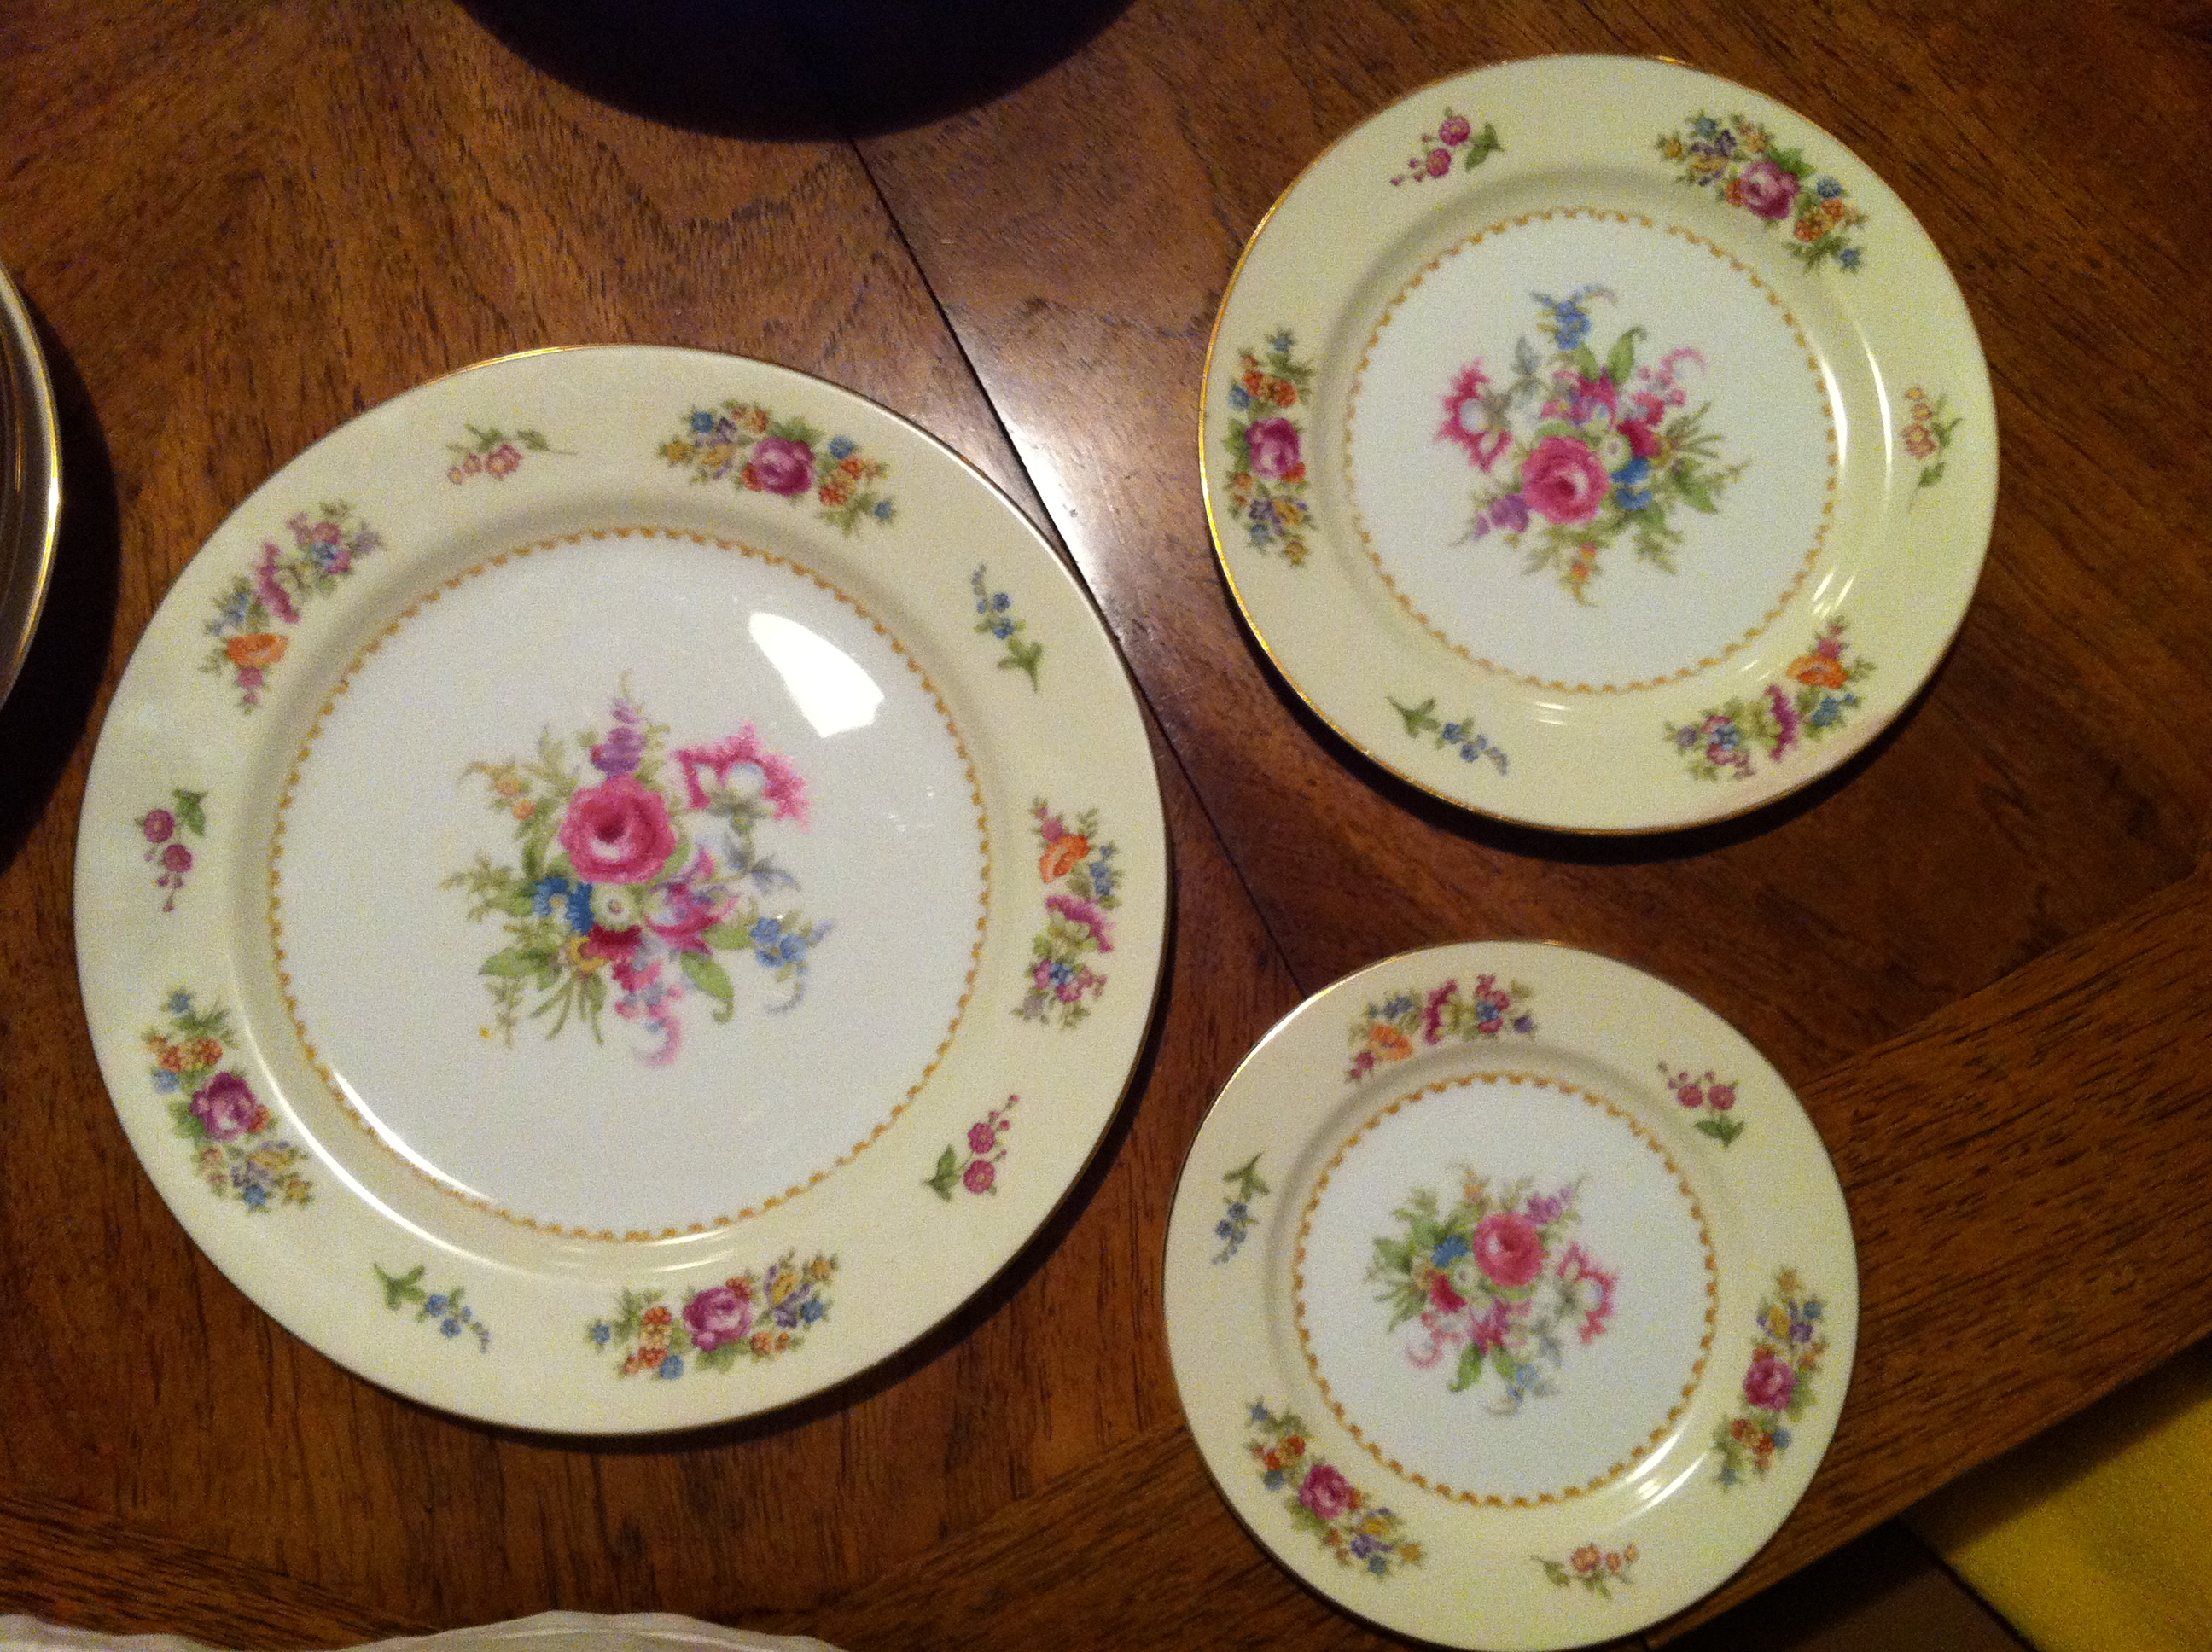 3 size plates